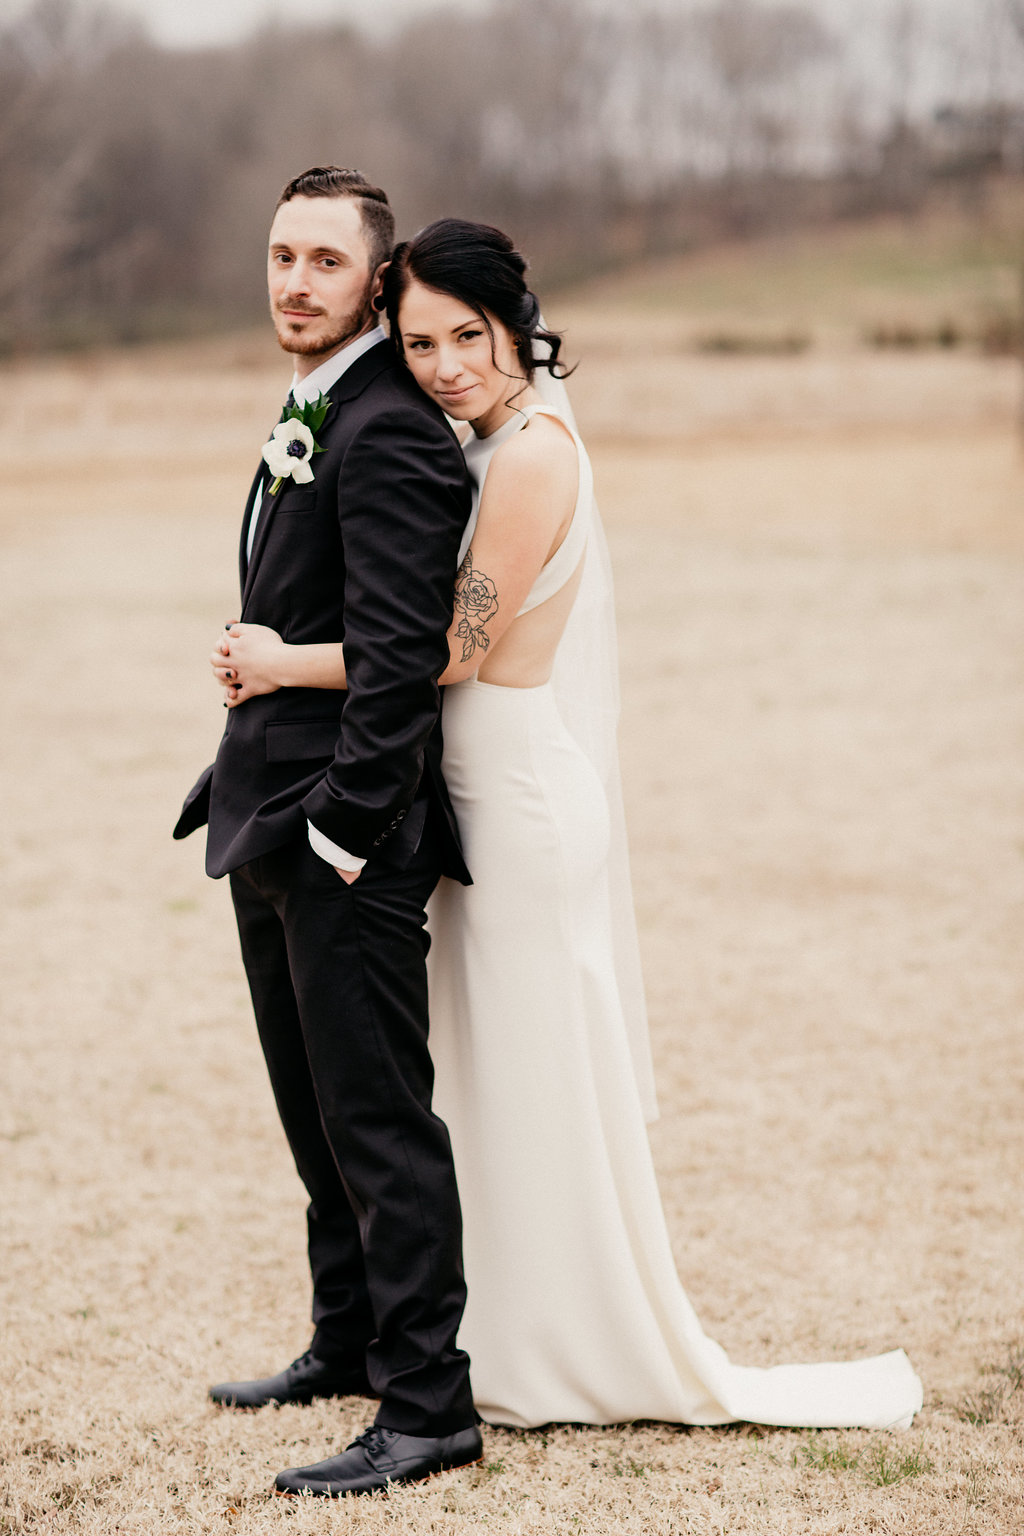 Bride+Groom-79.jpg